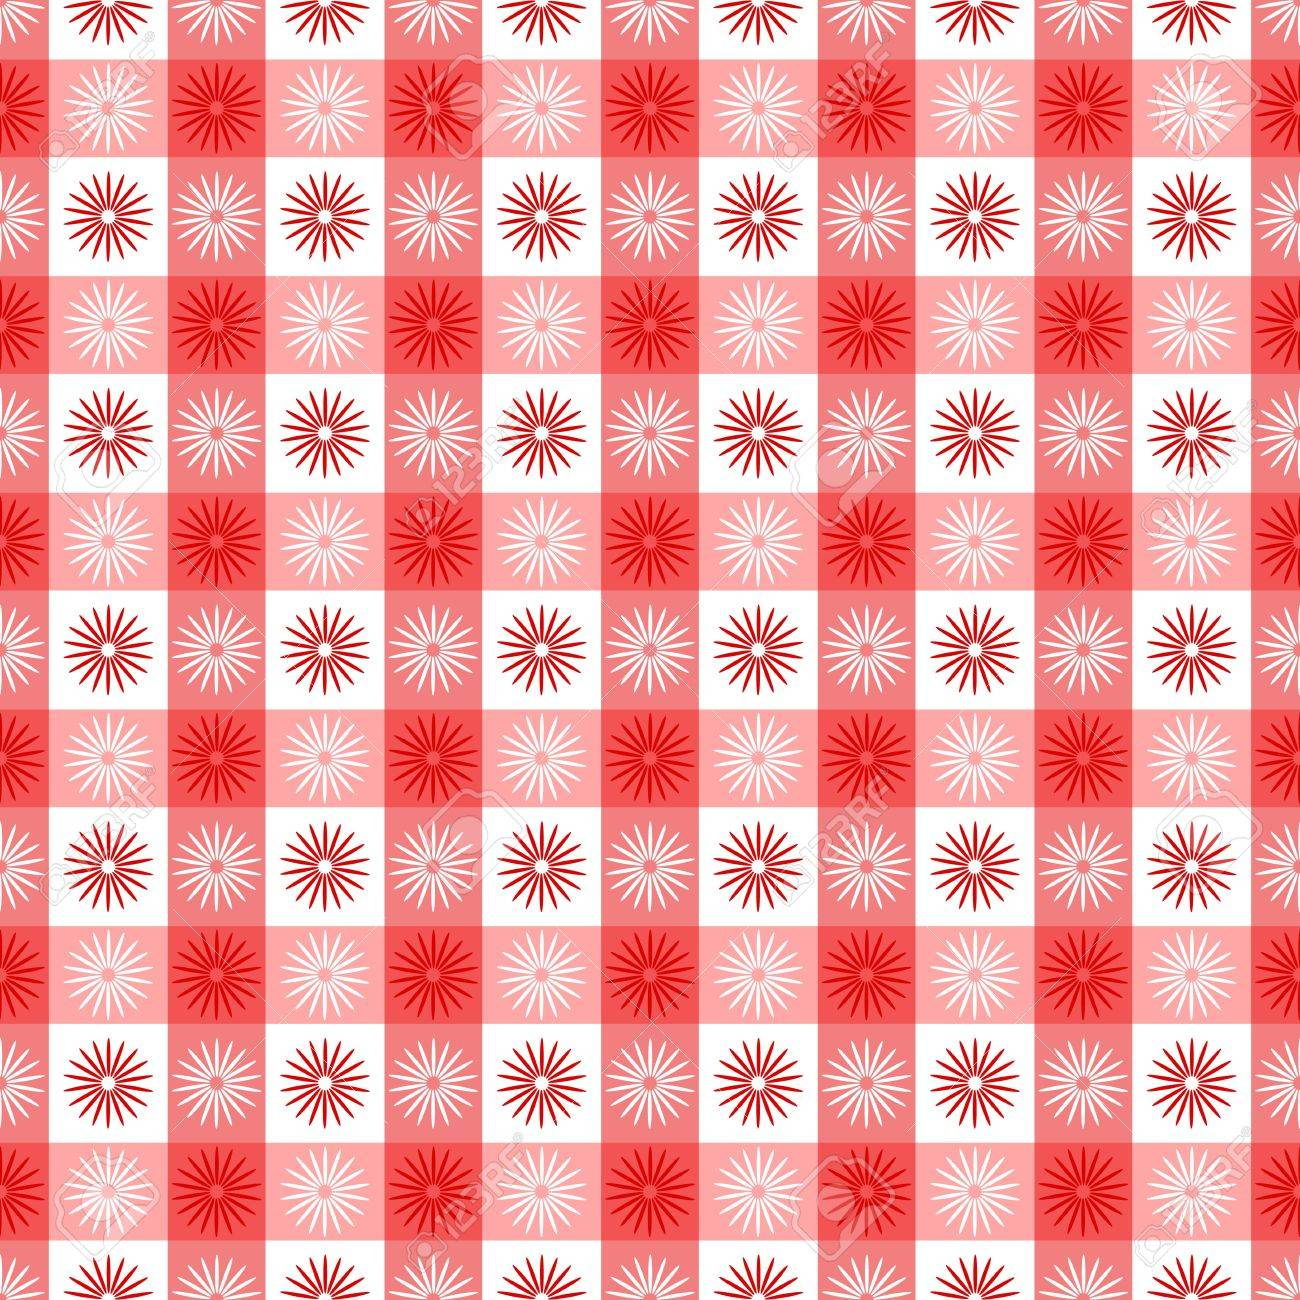 Seamless Red Gingham Geometrical Pattern With Floral Or Sun Symbols Fun Fabric Wallpaper